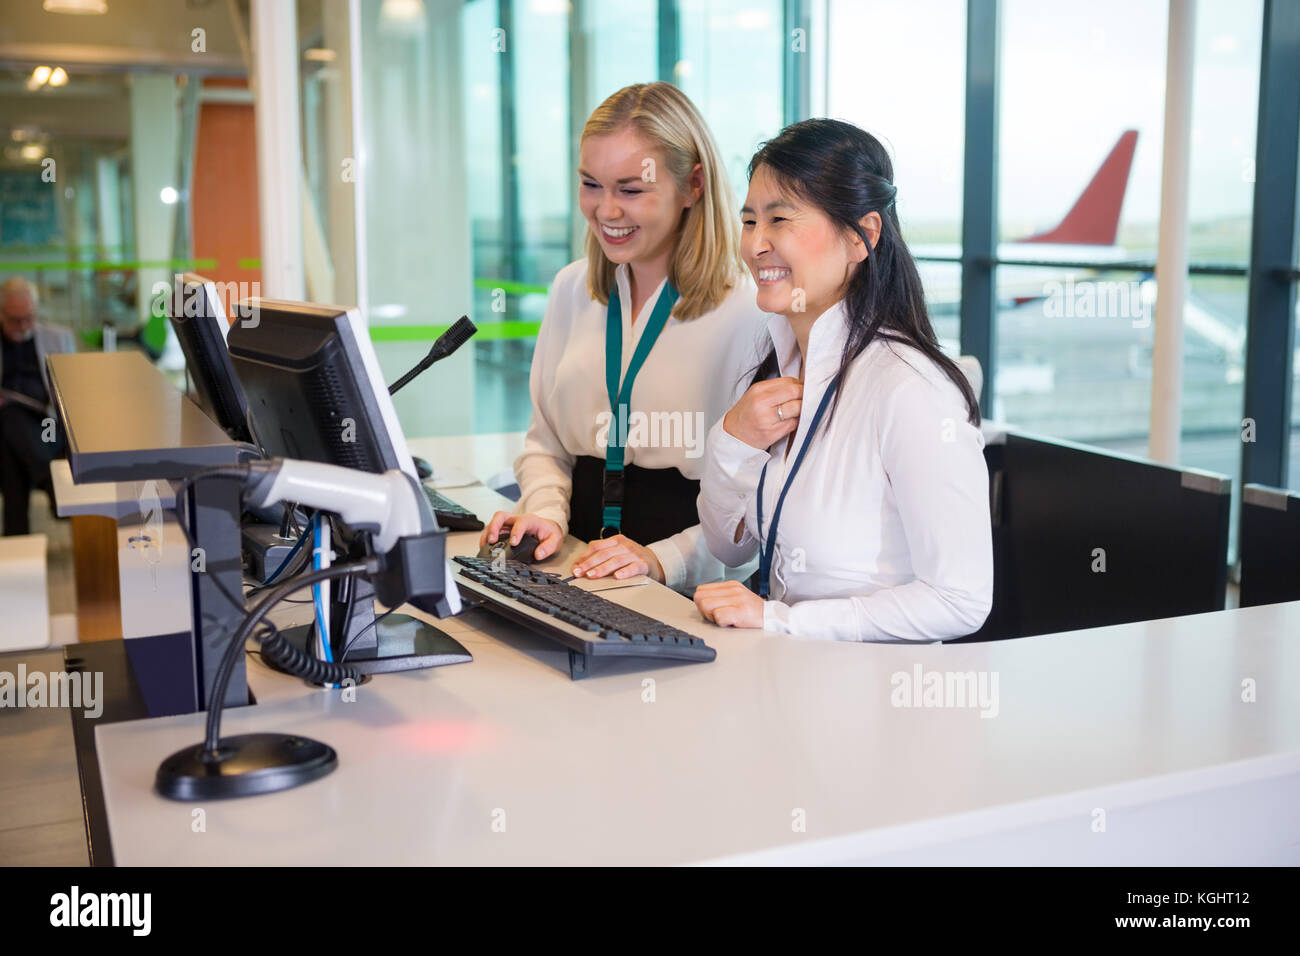 Smiling Receptionists Working At Desk In Airport - Stock Image